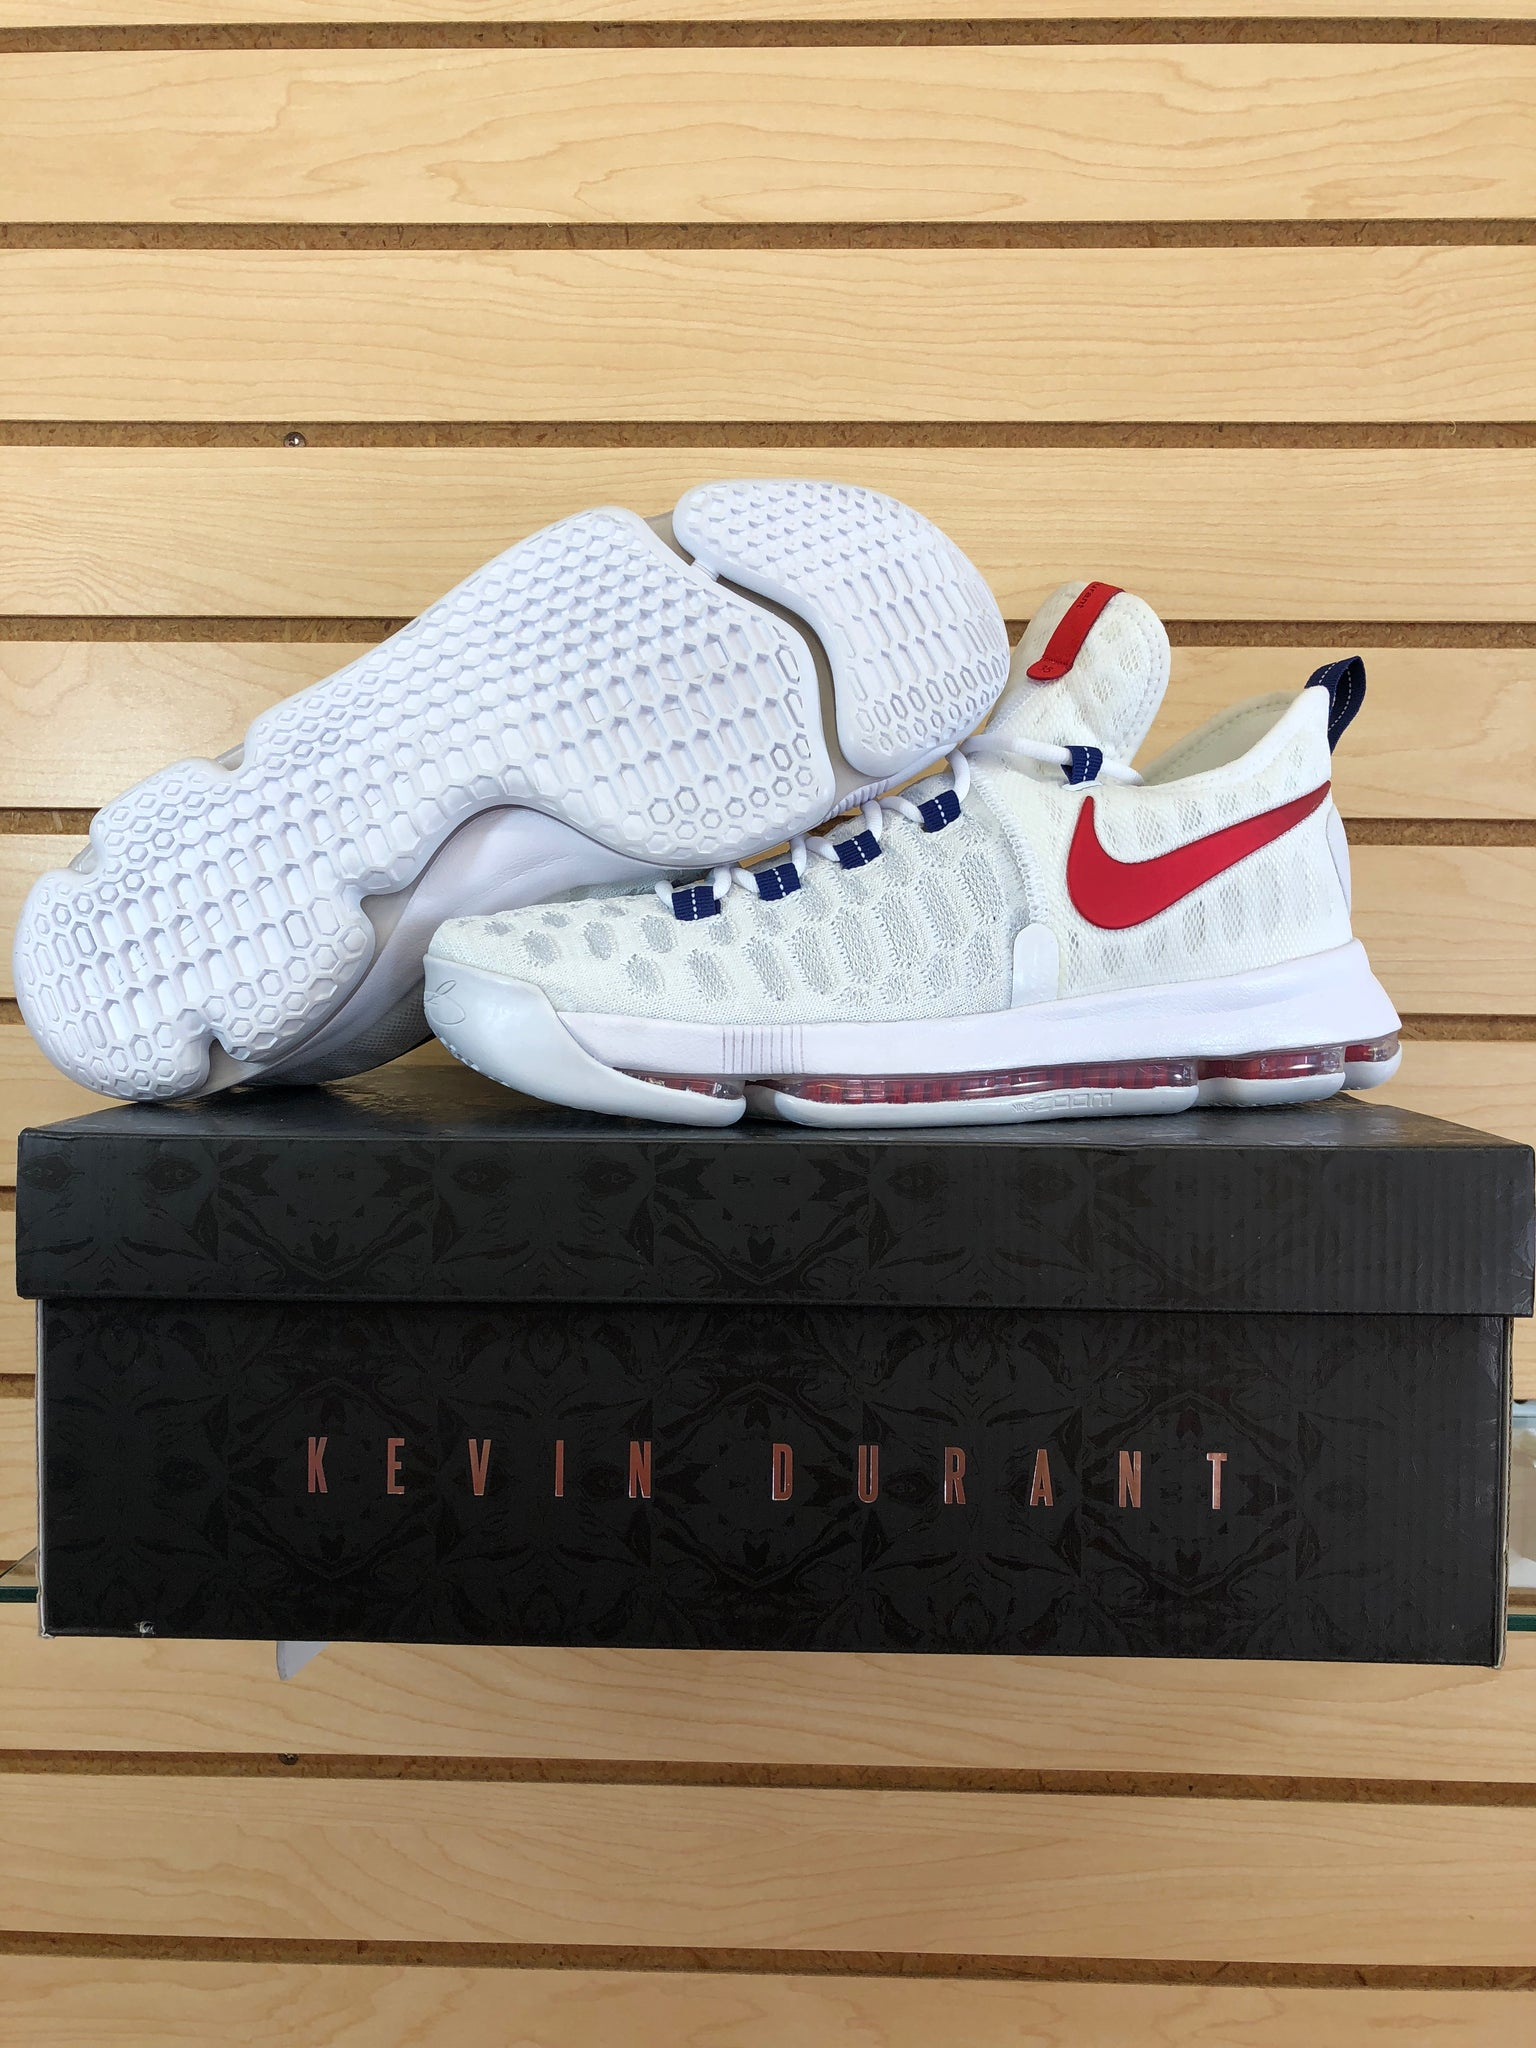 ca573cc20f73 where to buy kd 9 colorway upcoming 7f024 9331d